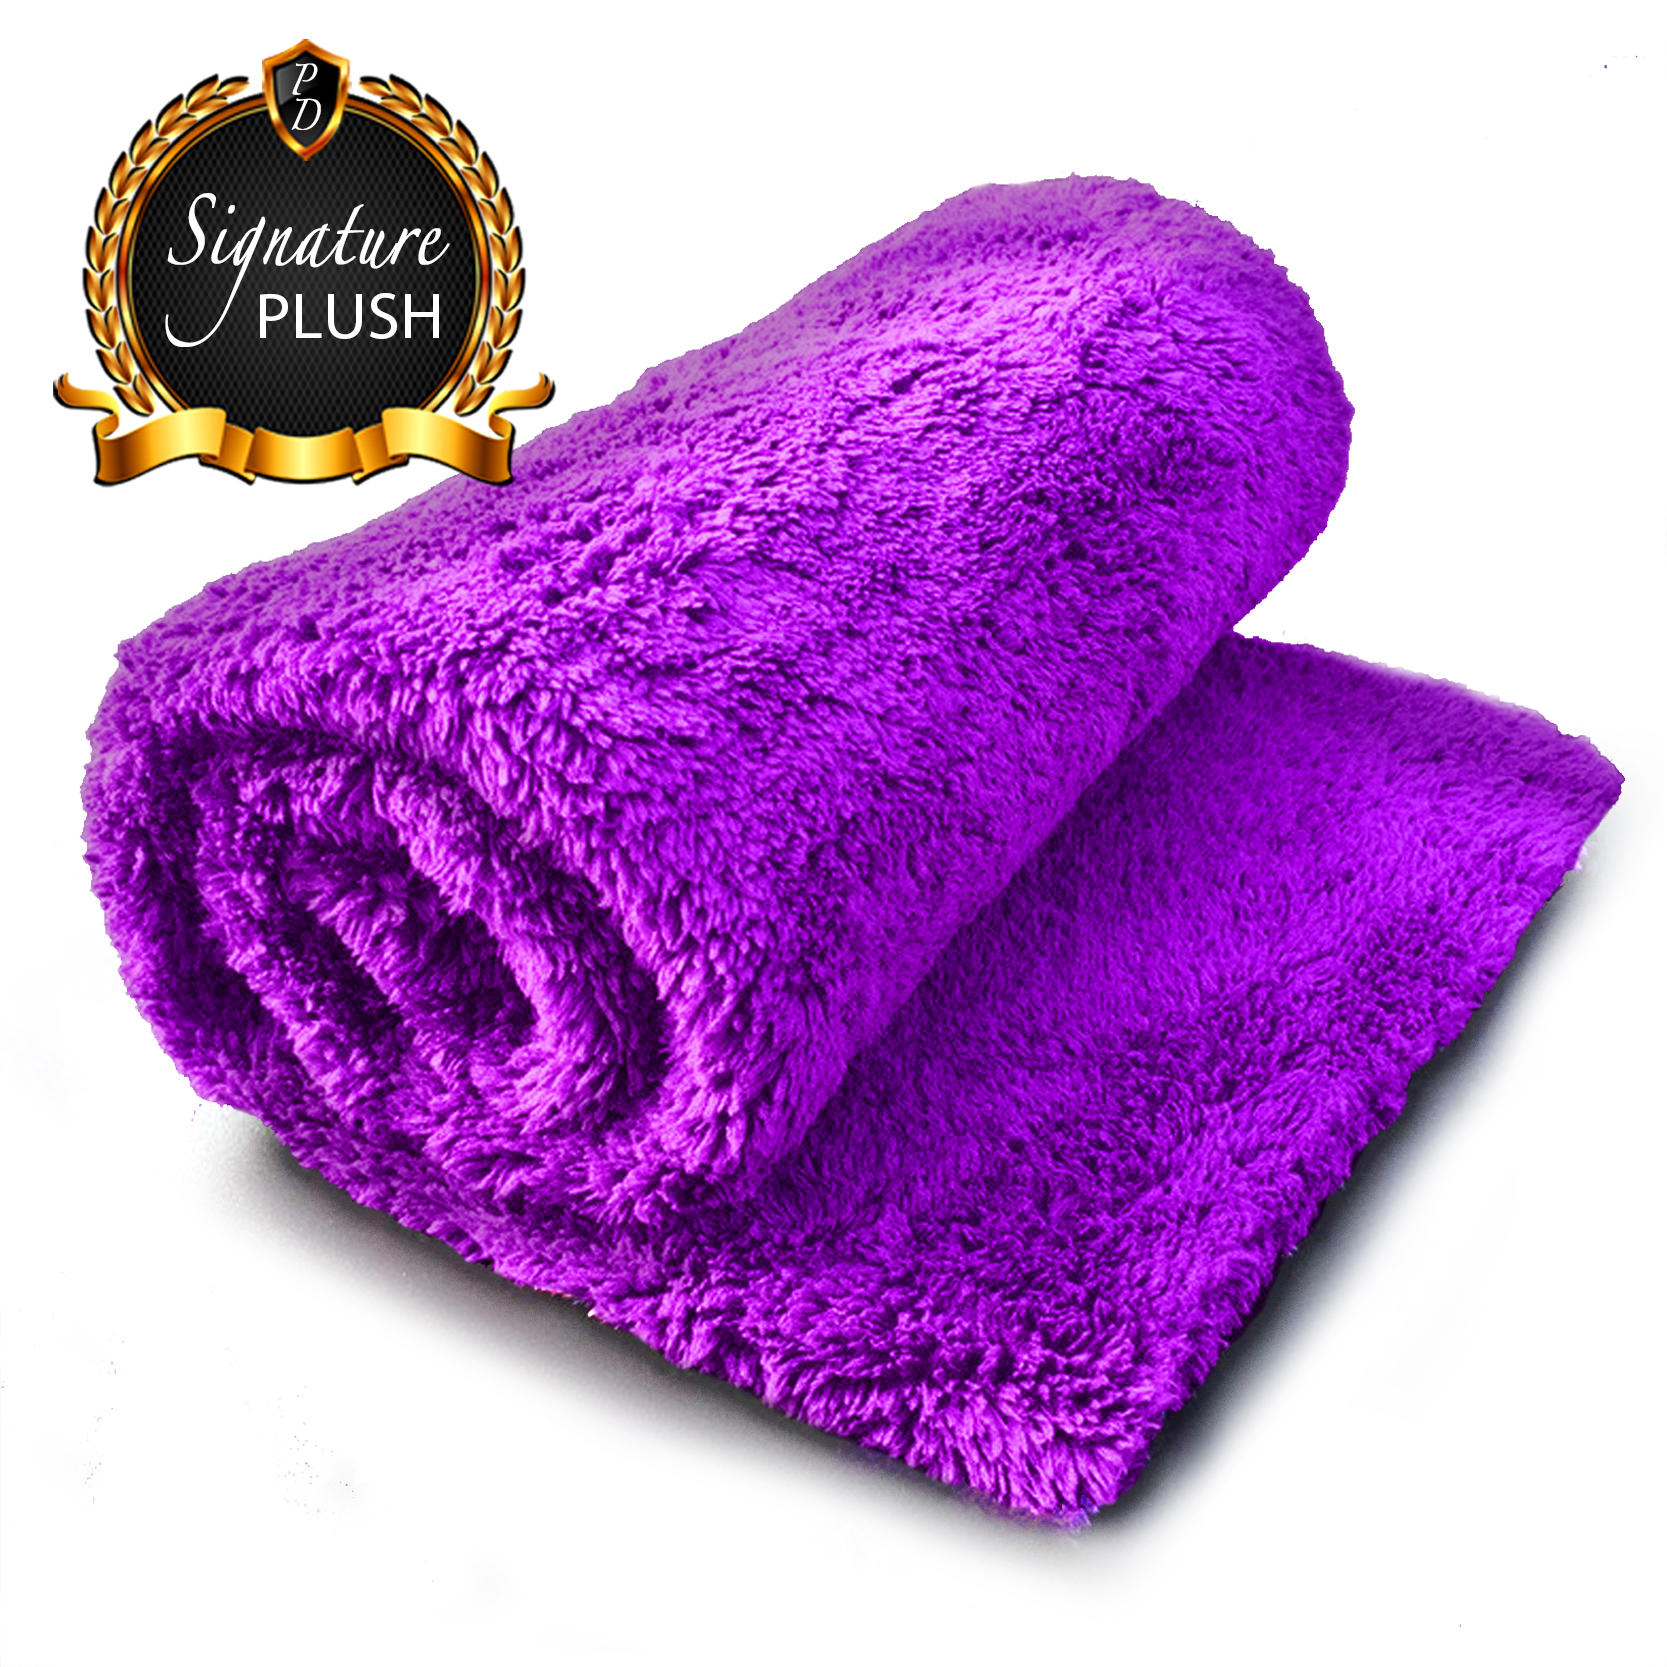 edgeless-purple-towel.jpg